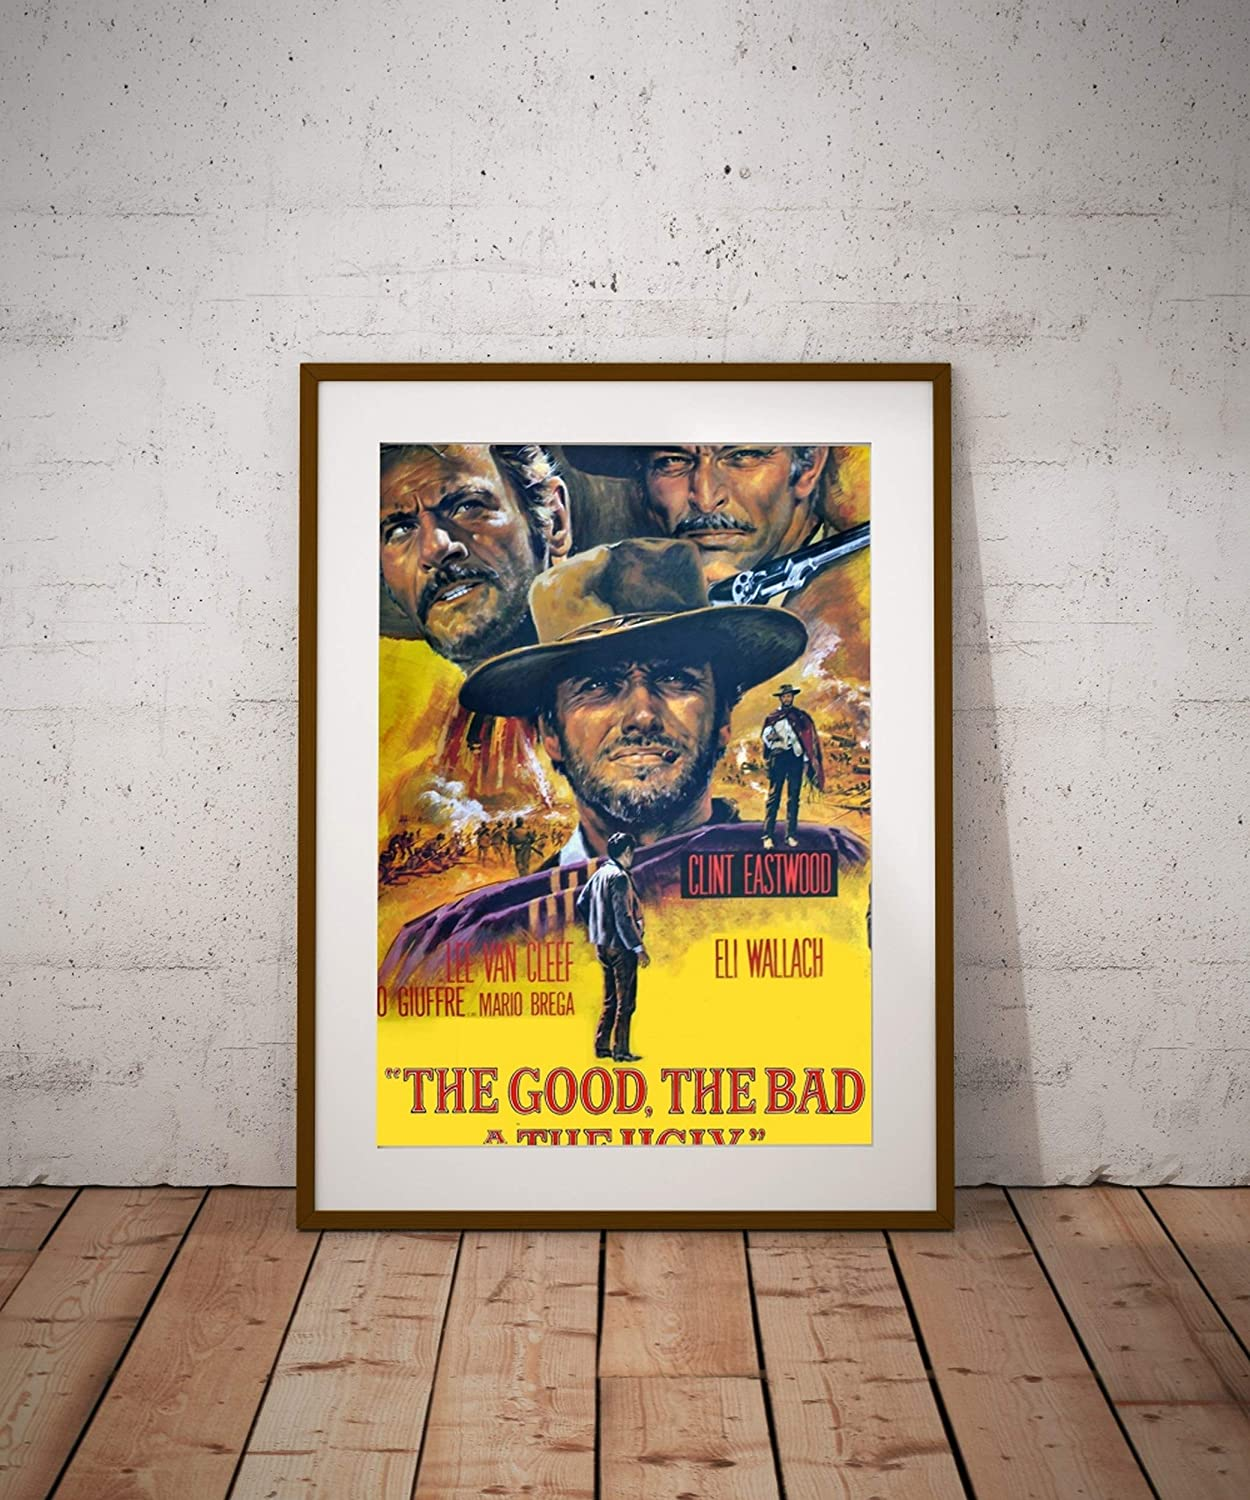 The Good The Bad and The Ugly Film Poster Wall Decor Poster Print Canvas Art Wall Art Print Gift Poster Unframed Printing Size - 11